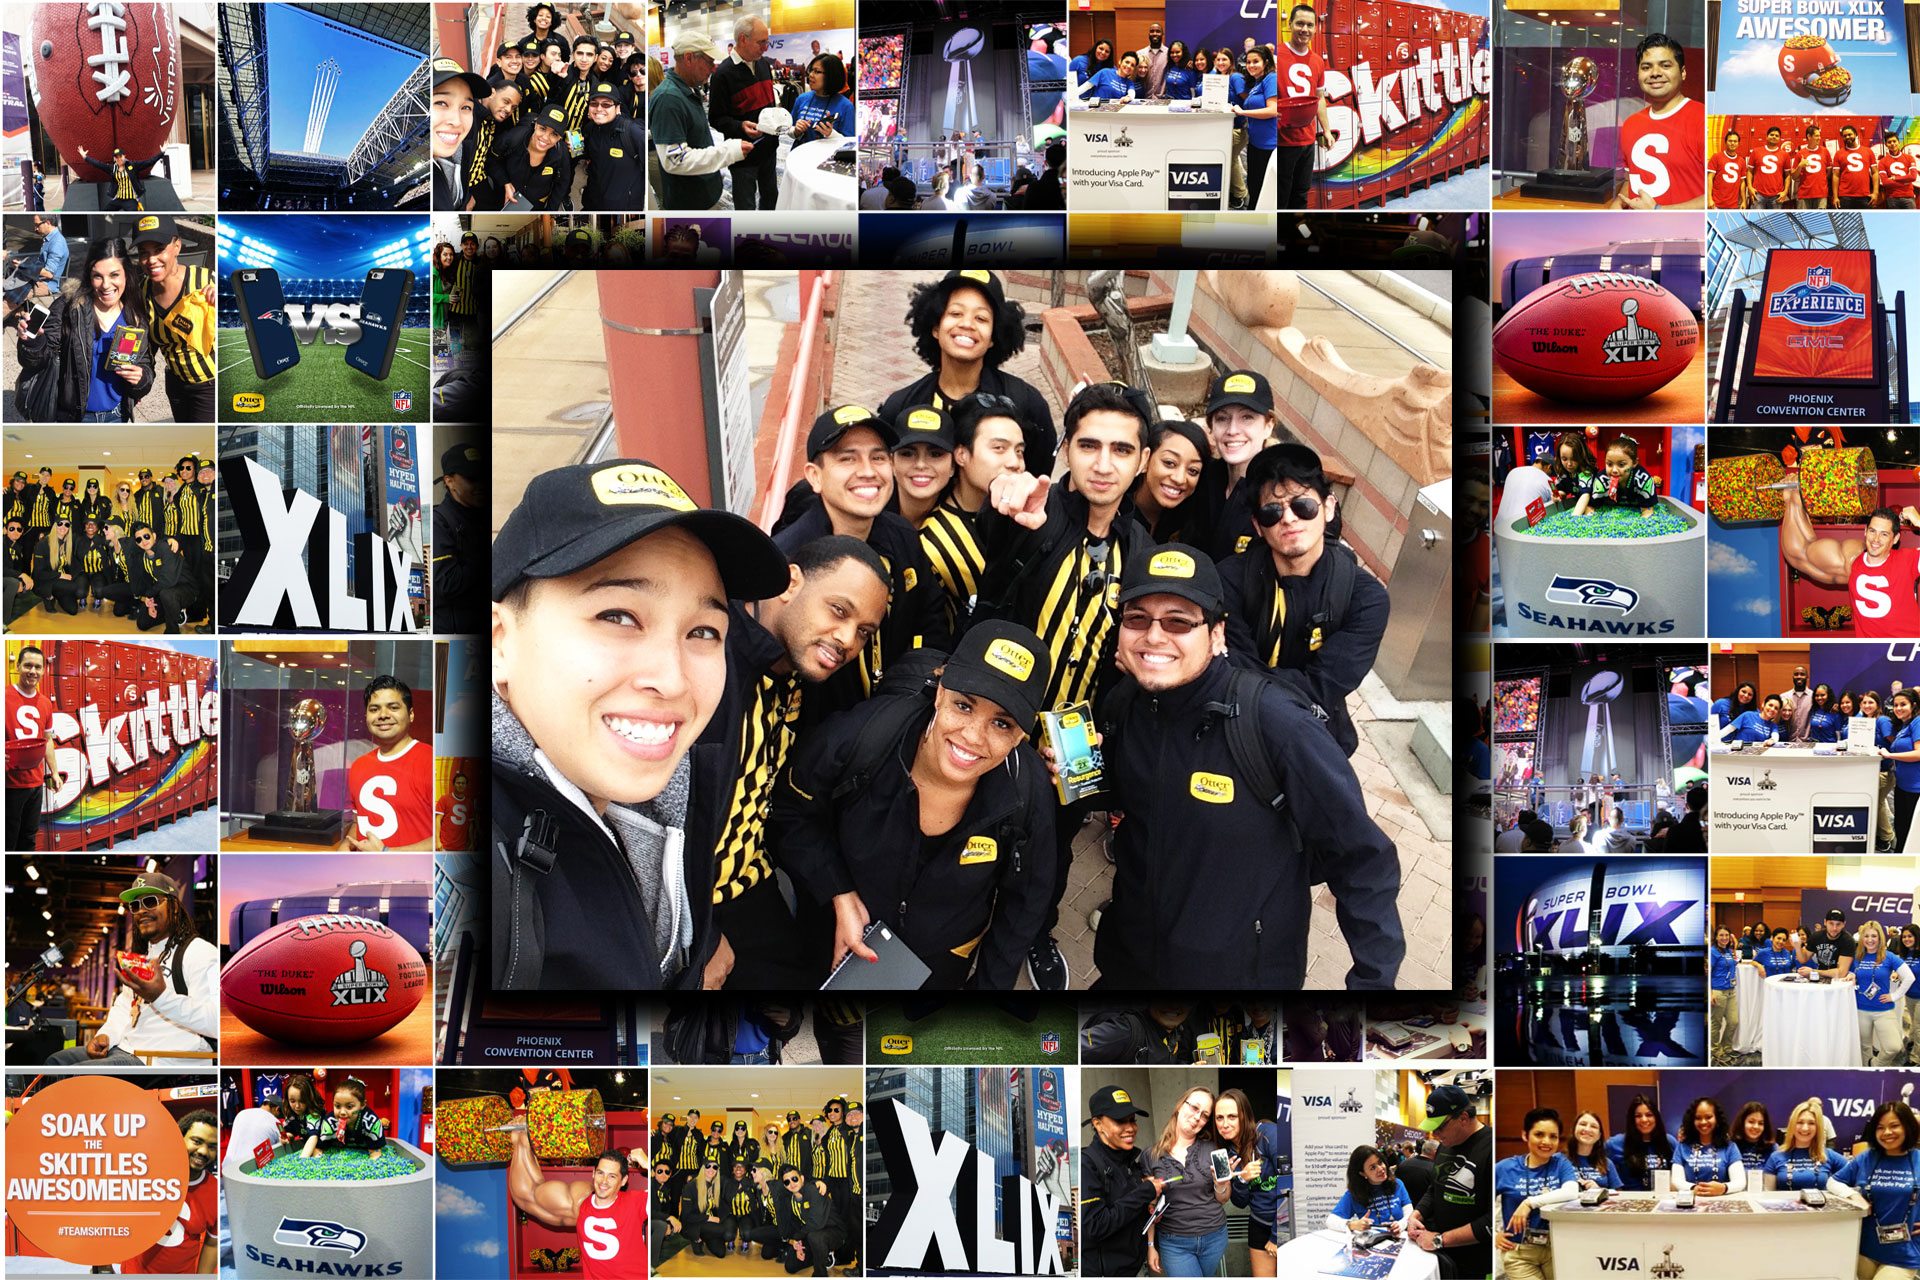 On Tour 24/7's Brand Ambassadors working for Skittles, Snickers, VISA, and OtterBox at Super Bowl XLIX in Phoenix, AZ.